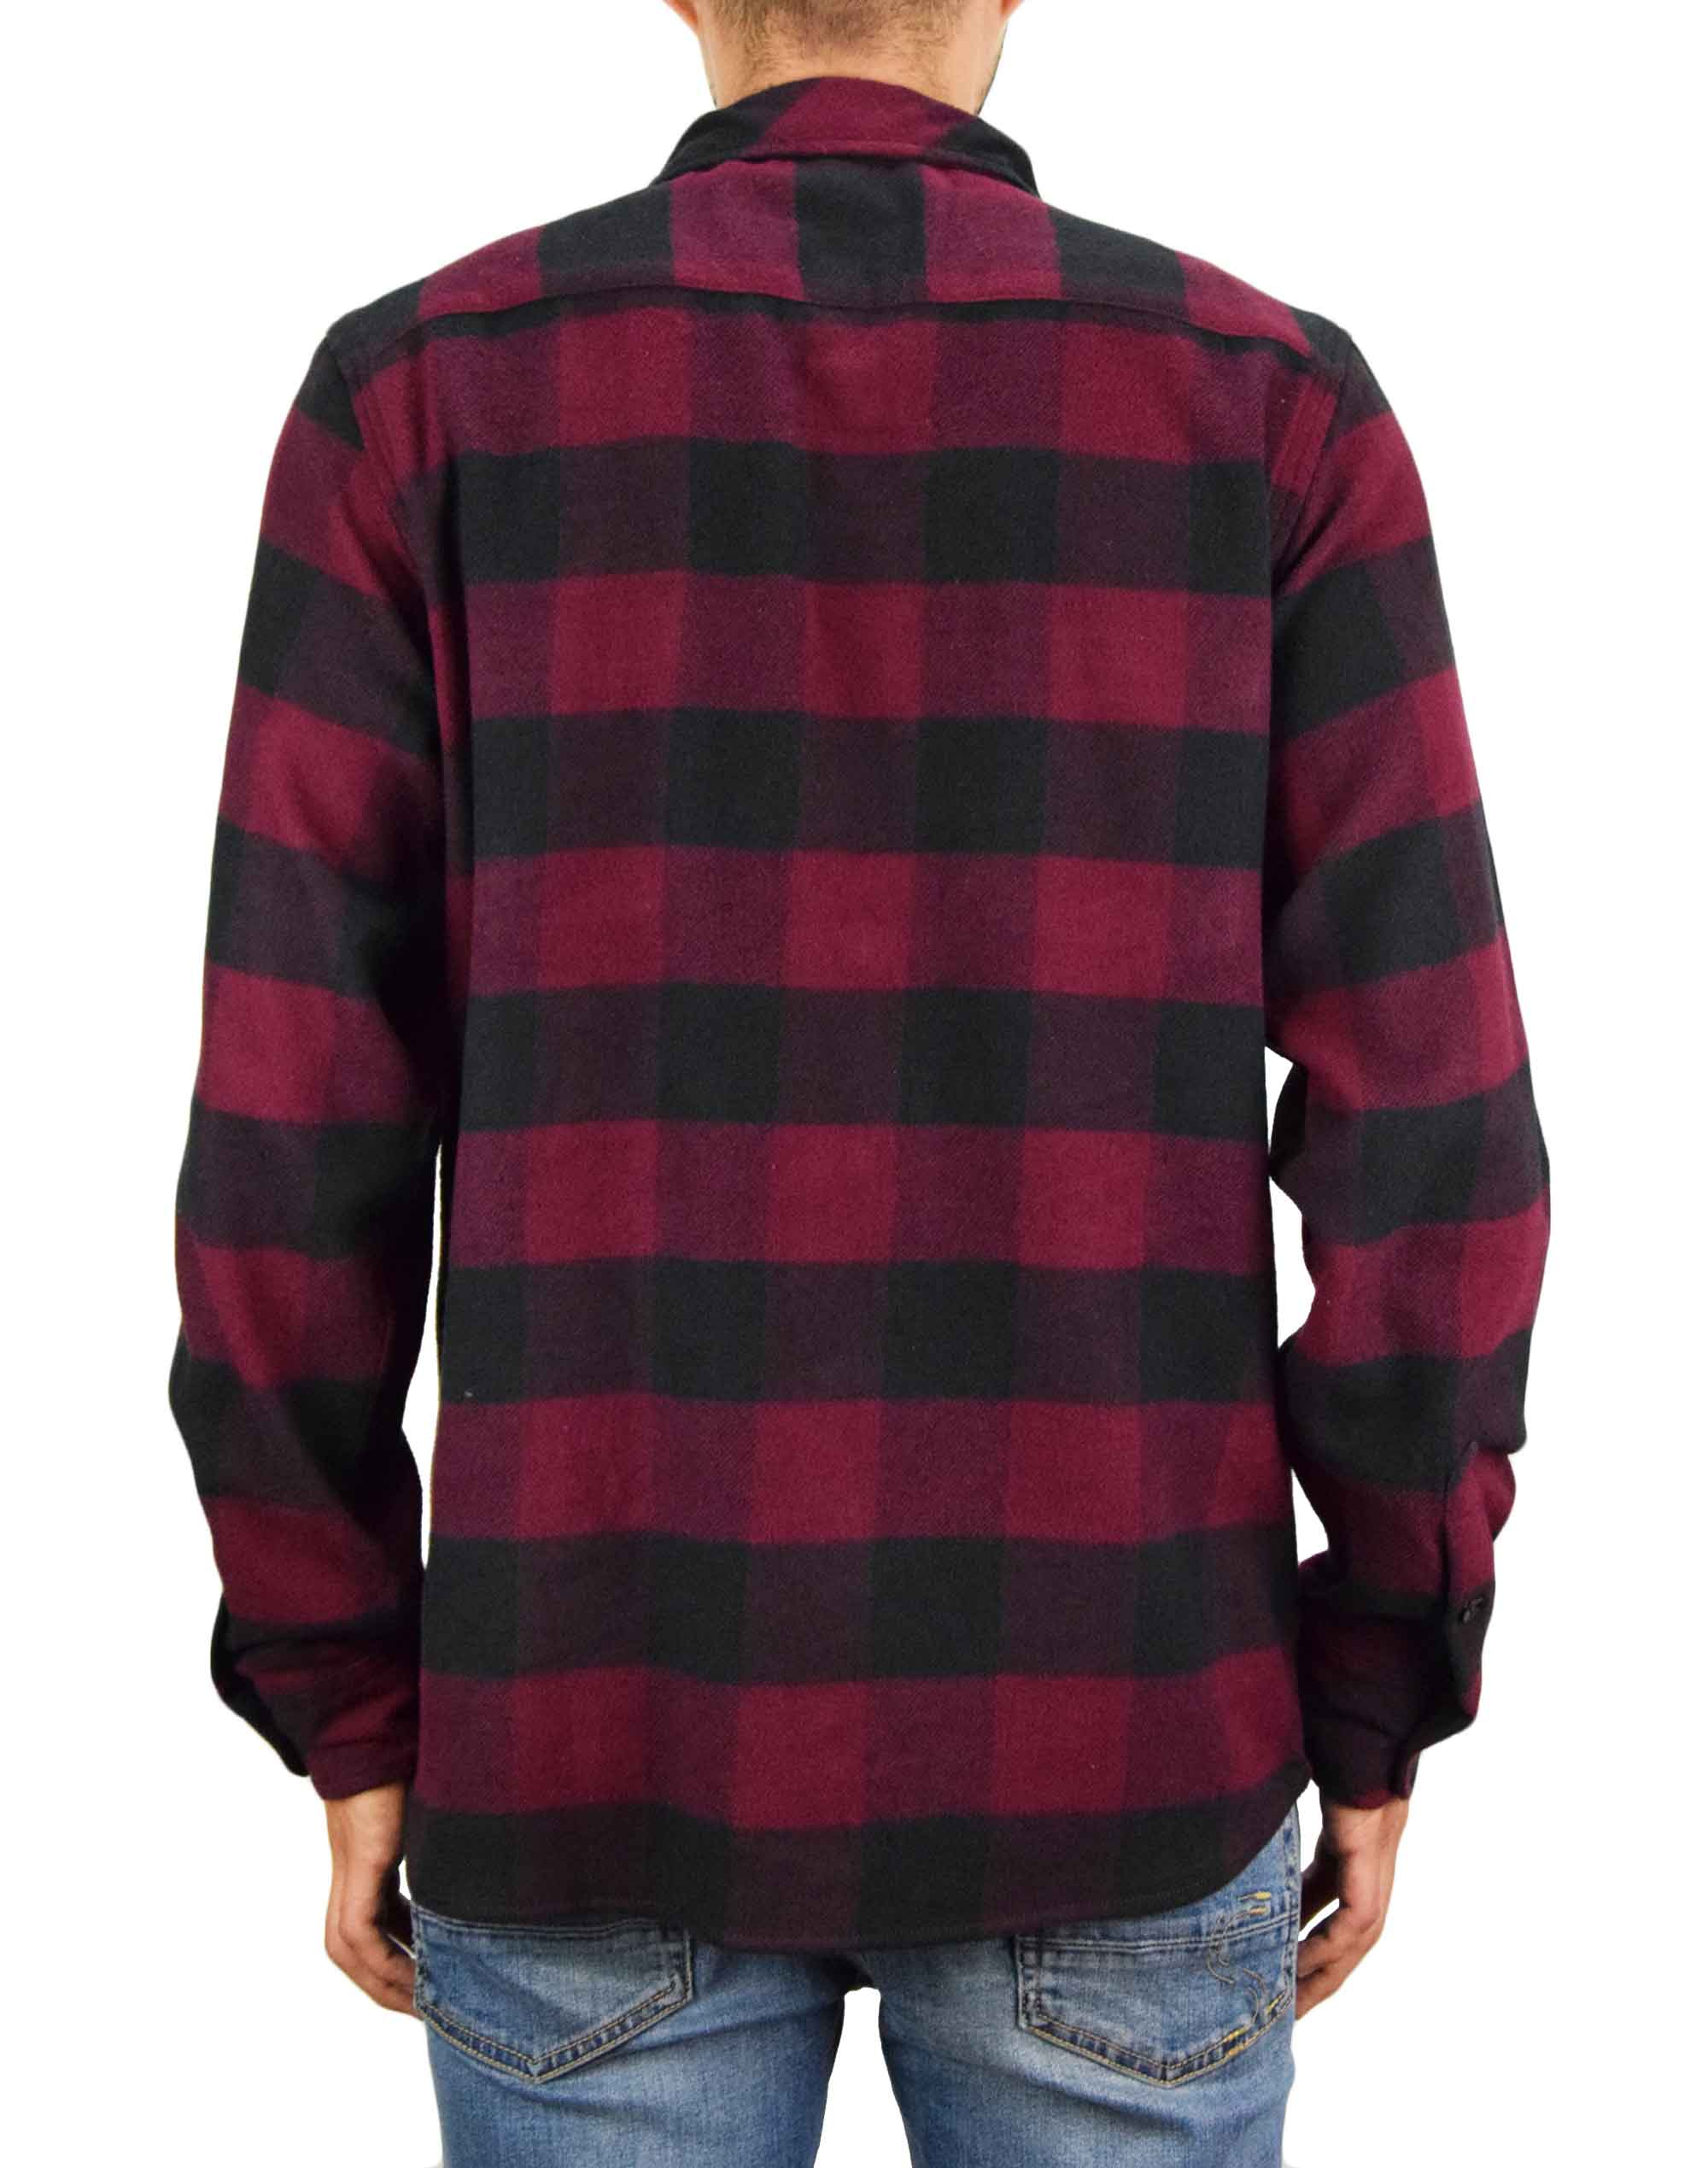 Dickies Sacramento Relaxed Shirt (DK0A4X8NMR01) Maroon/Black